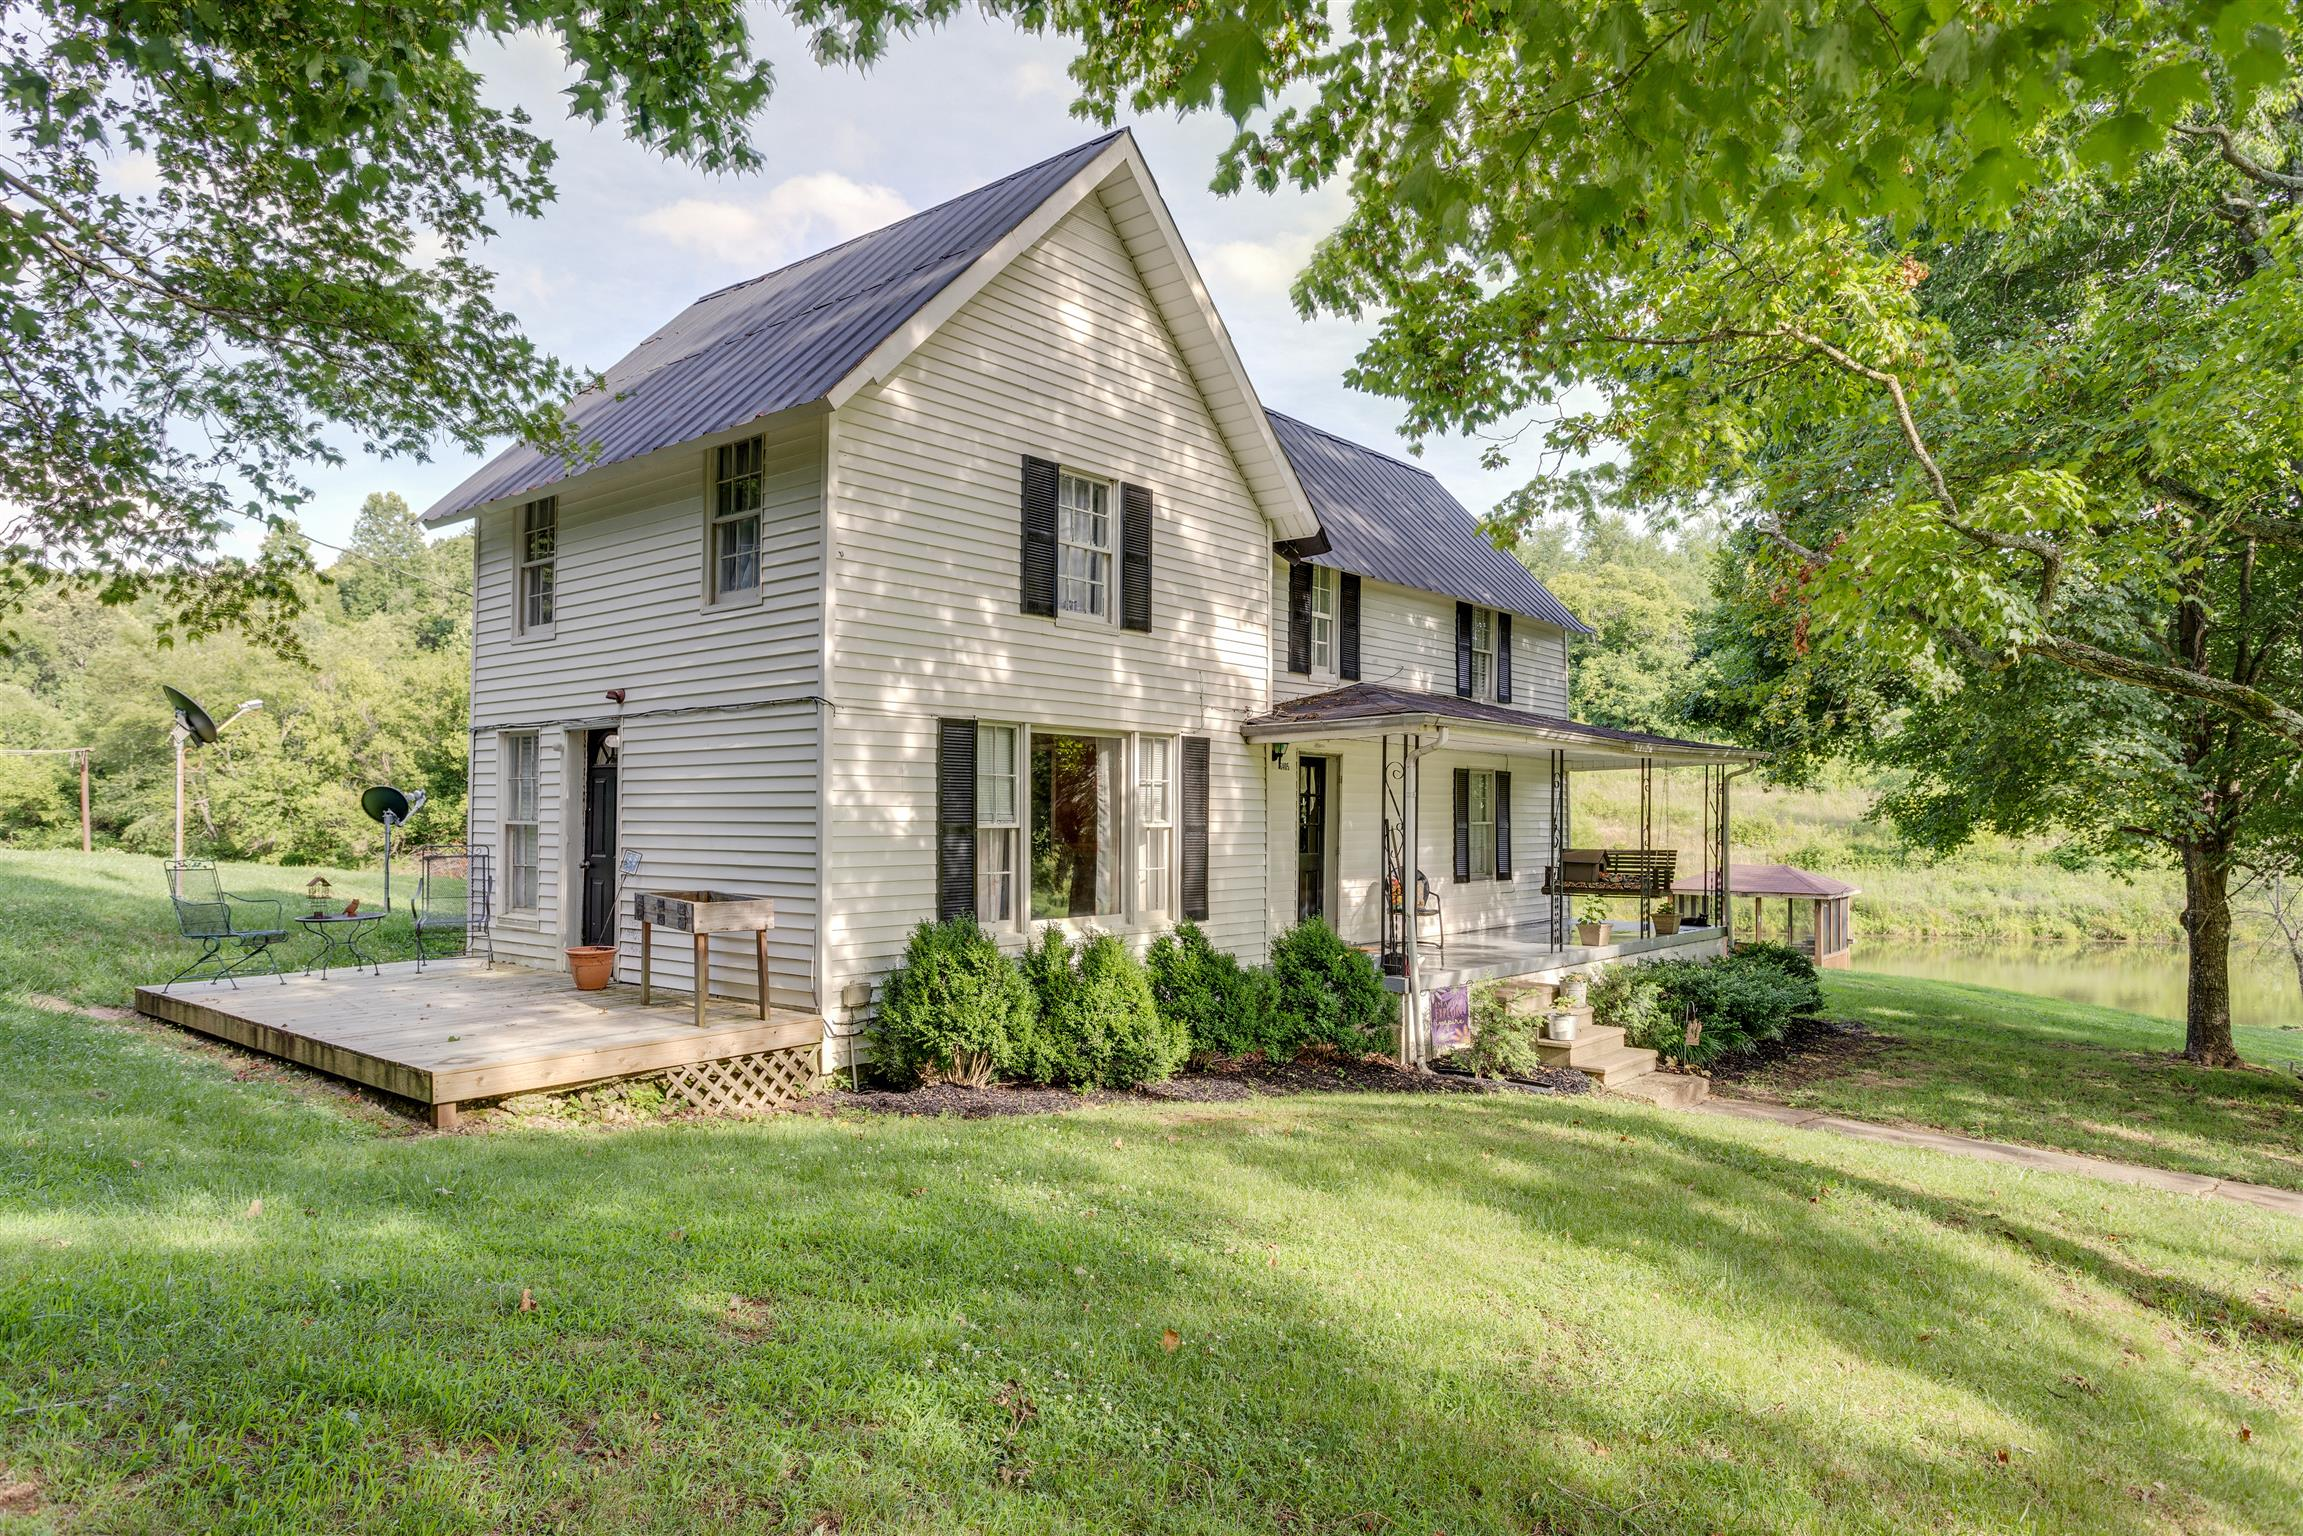 6405 Knubbin Ridge Rd, Lynnville, TN 38472 - Lynnville, TN real estate listing